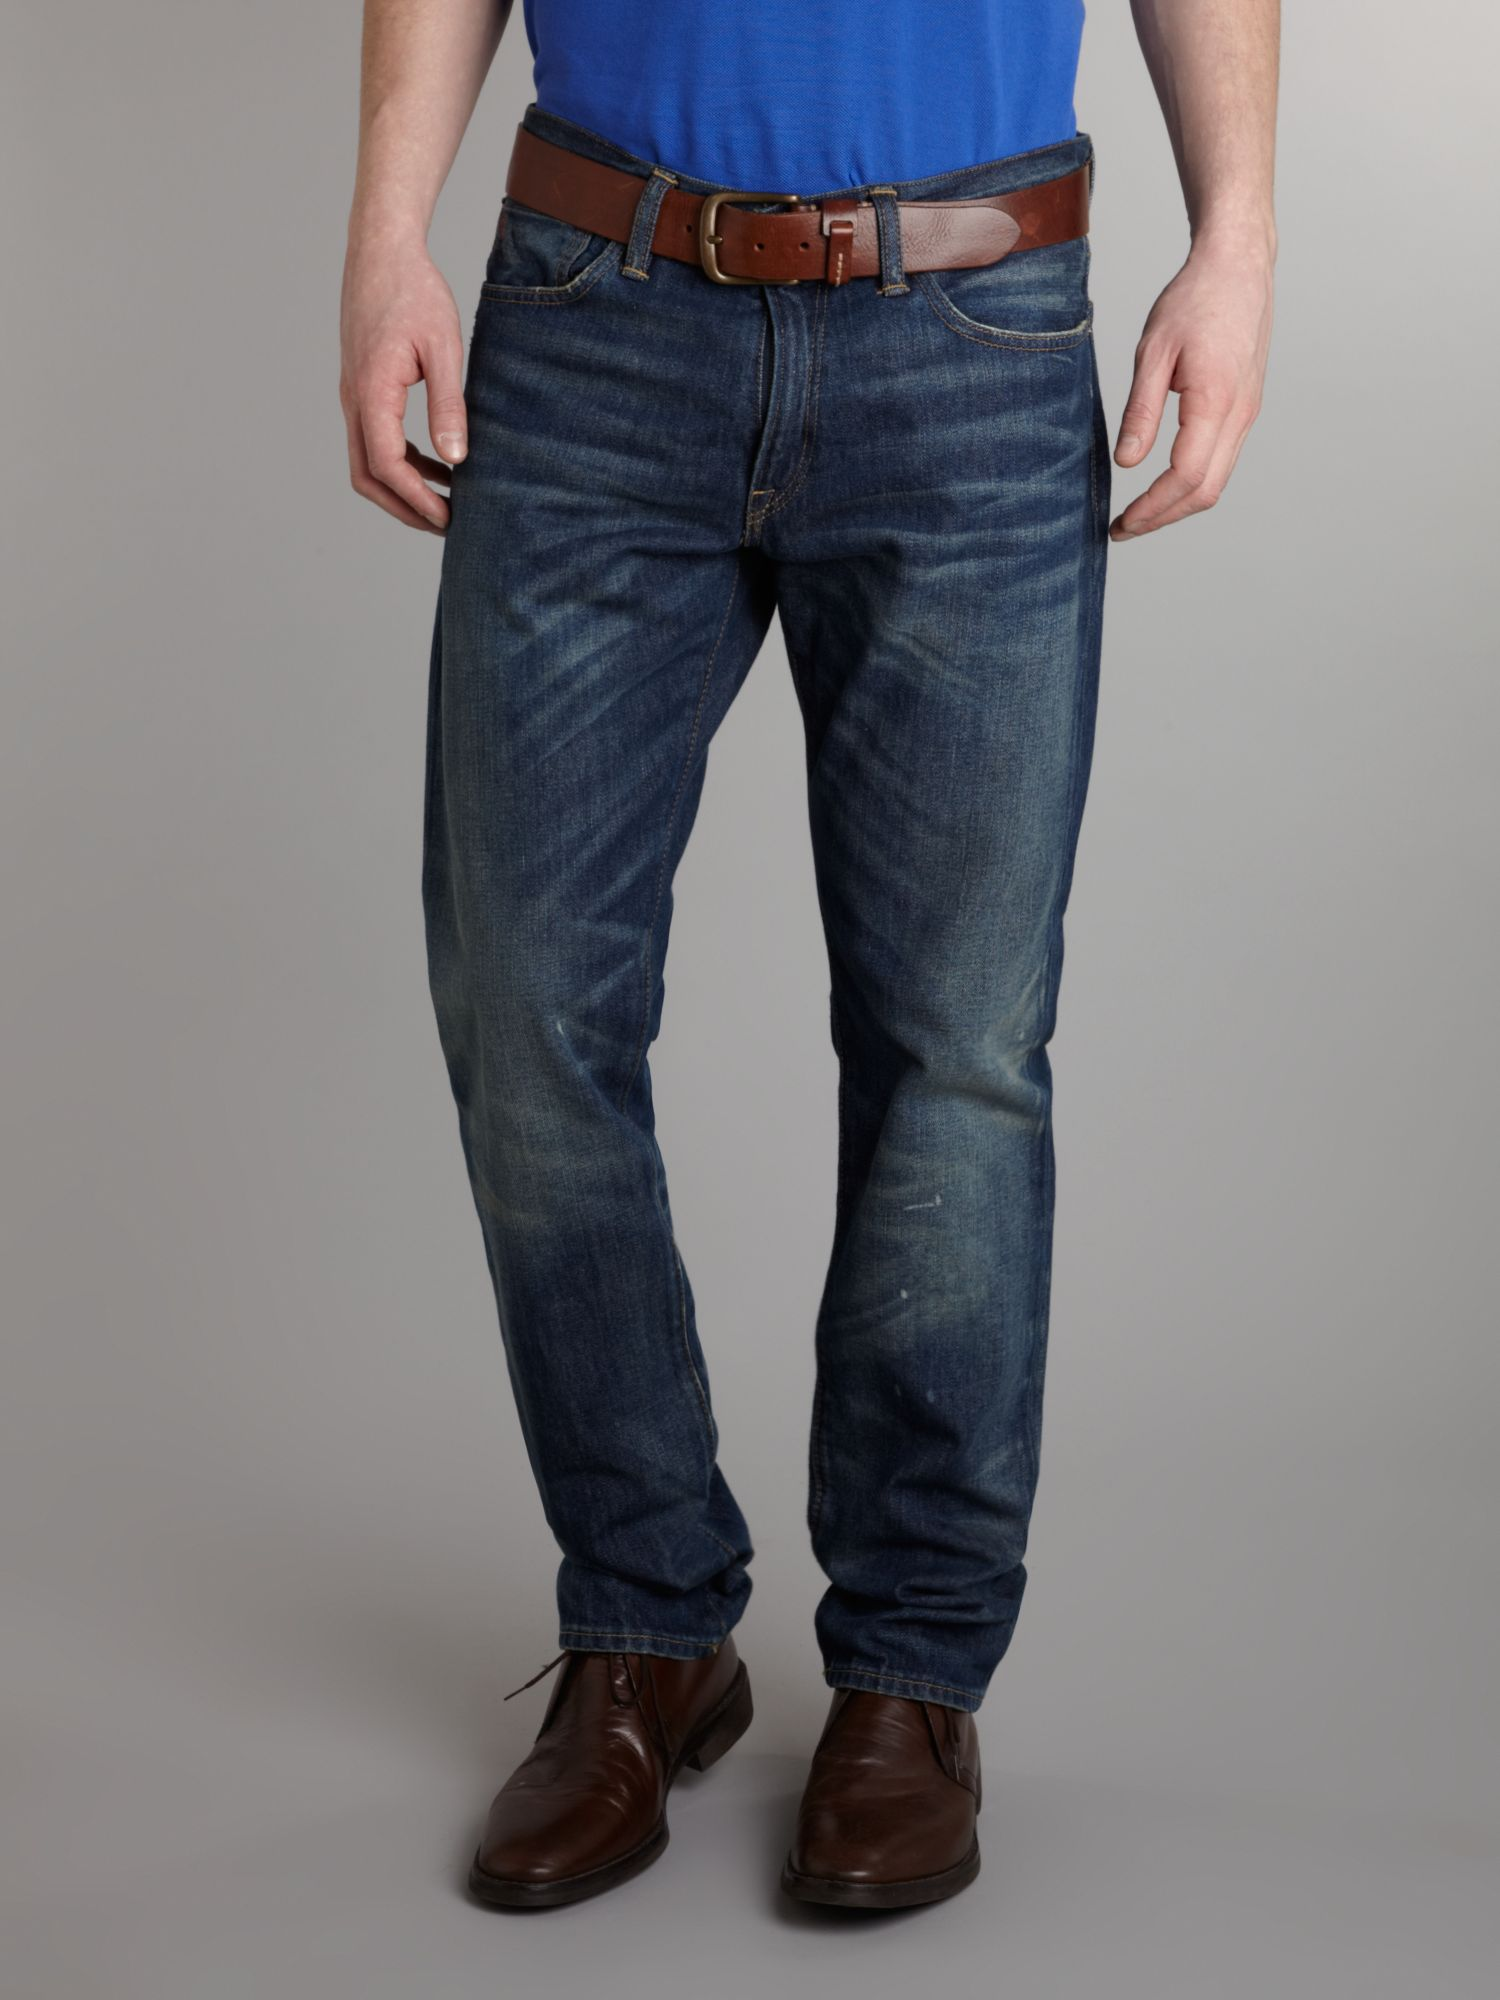 Varick slim fitted jeans